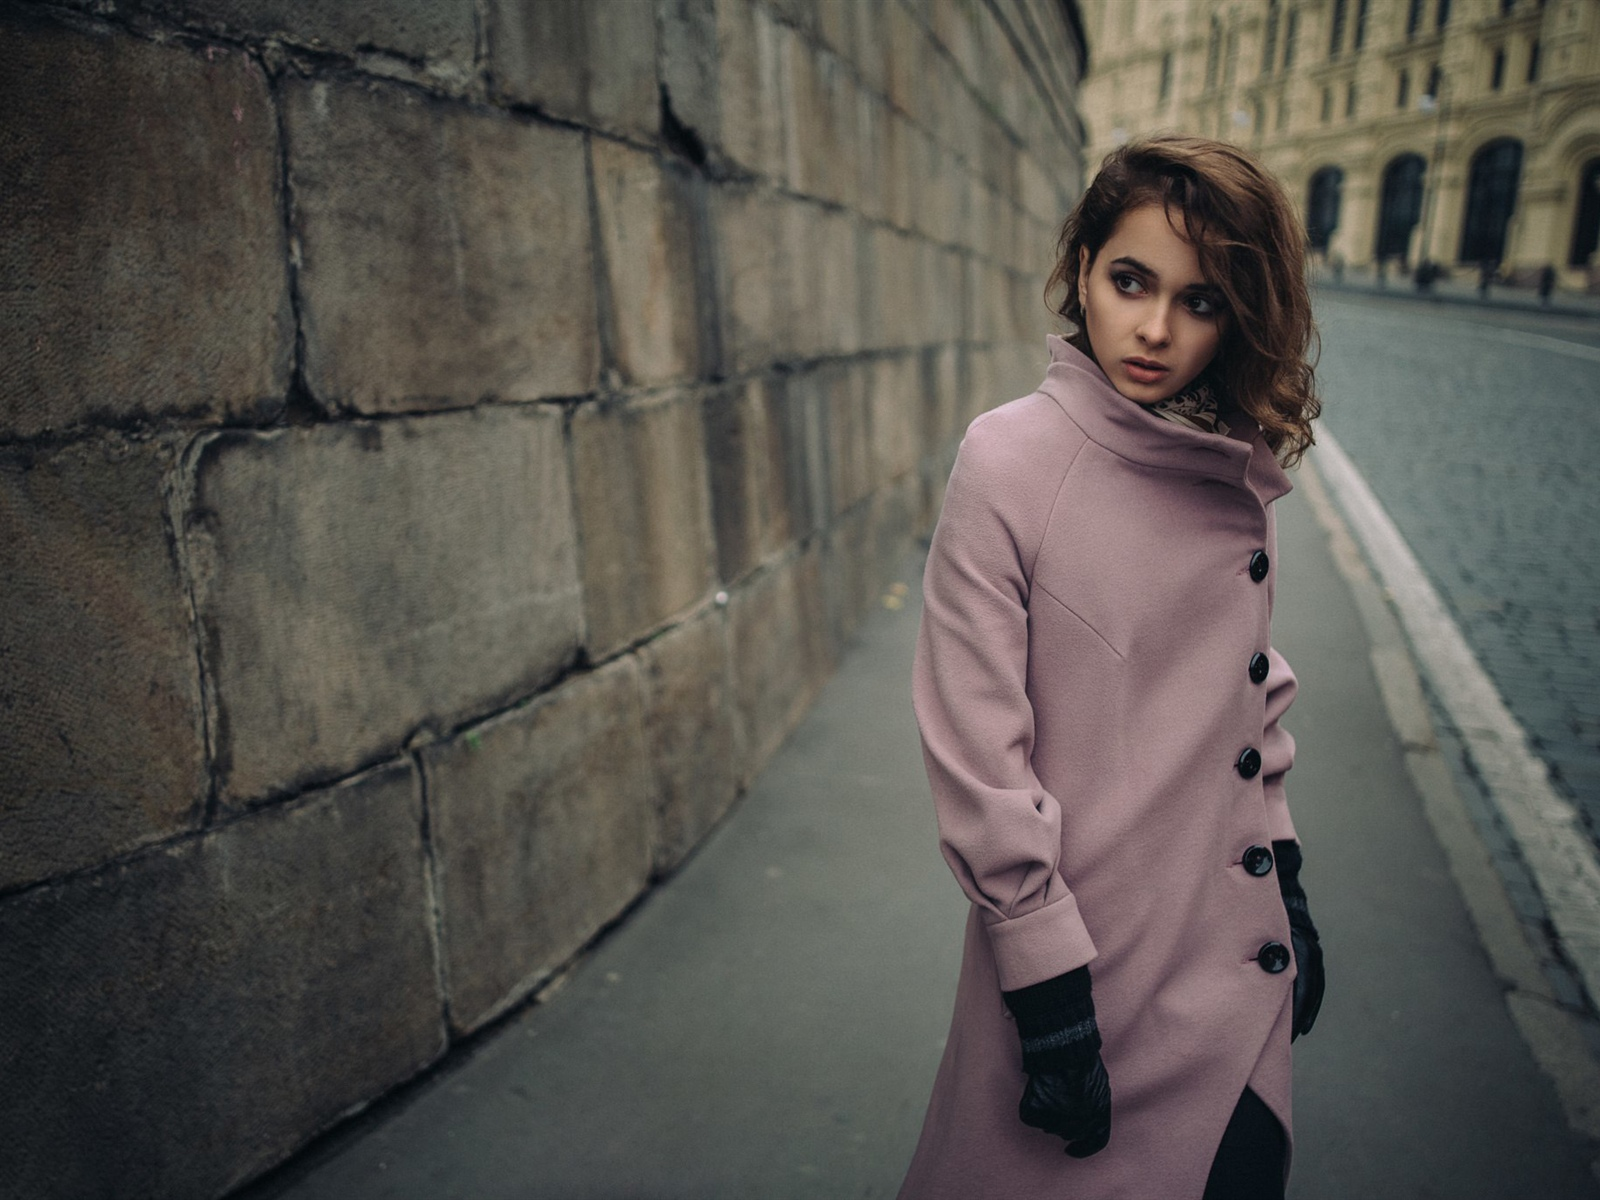 Pink clothing girl, city, street 1600x1200 wallpaper